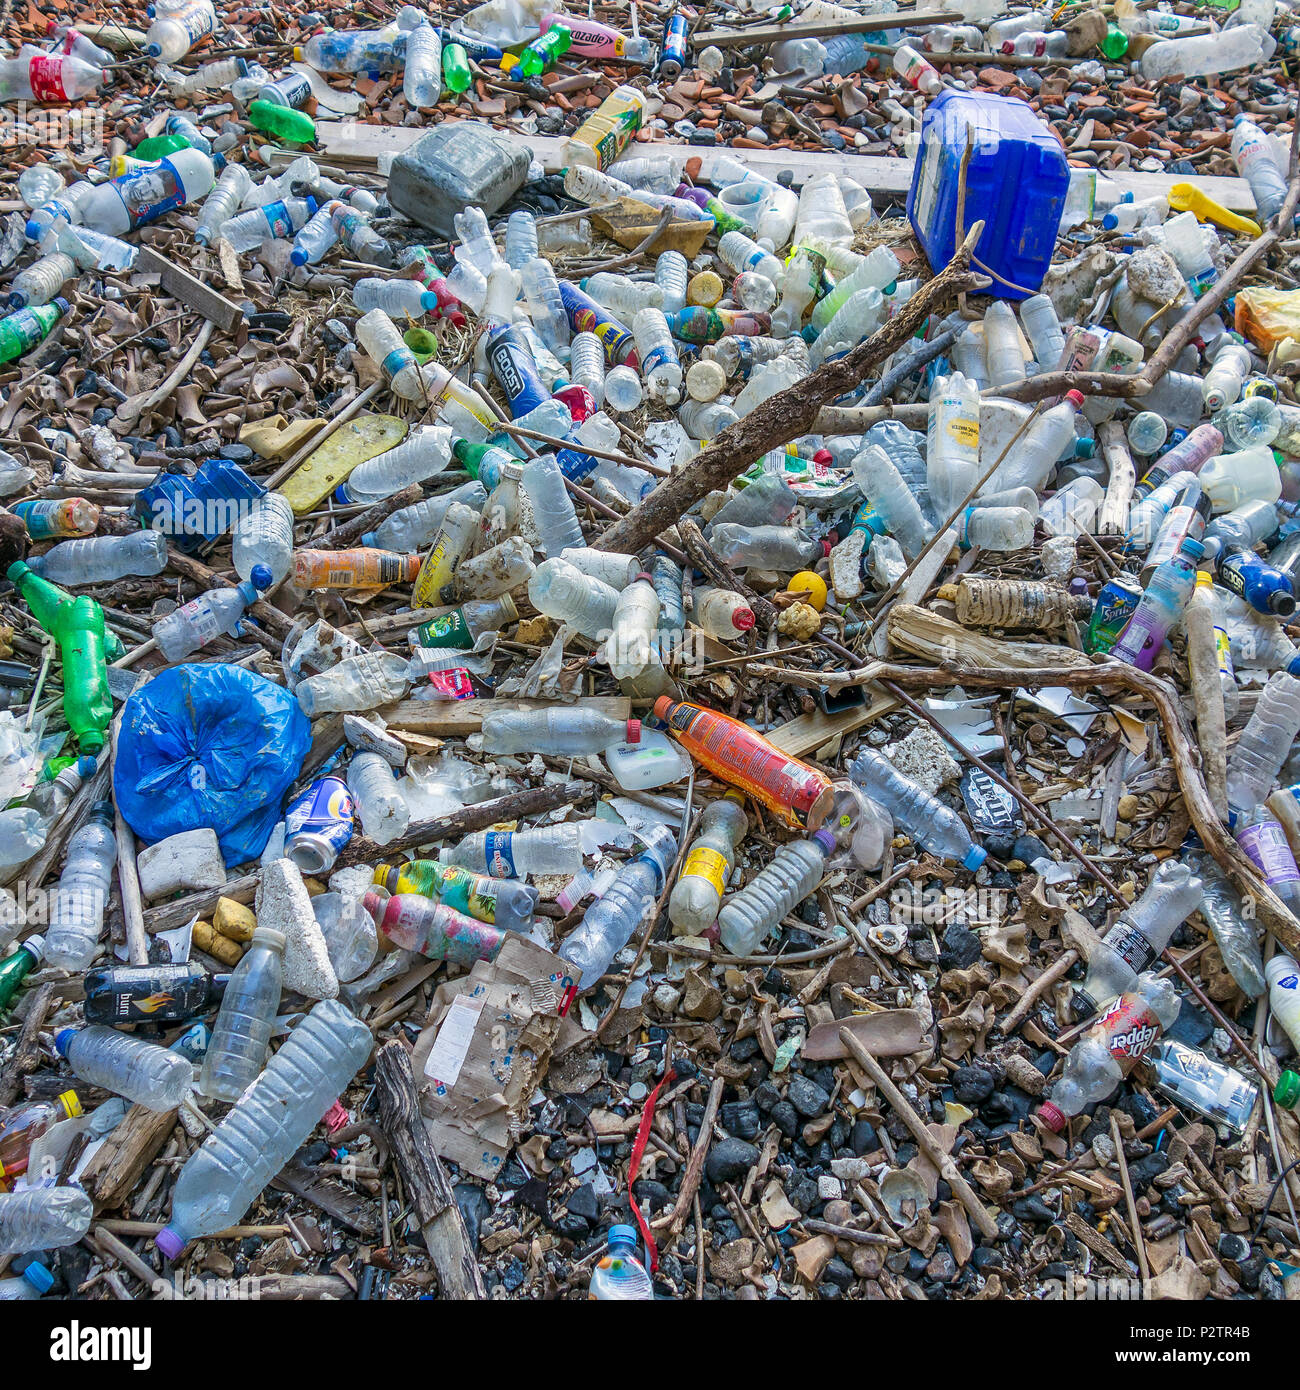 Plastic,pollution,bottles,washed up,Beach,Plastic Waste - Stock Image